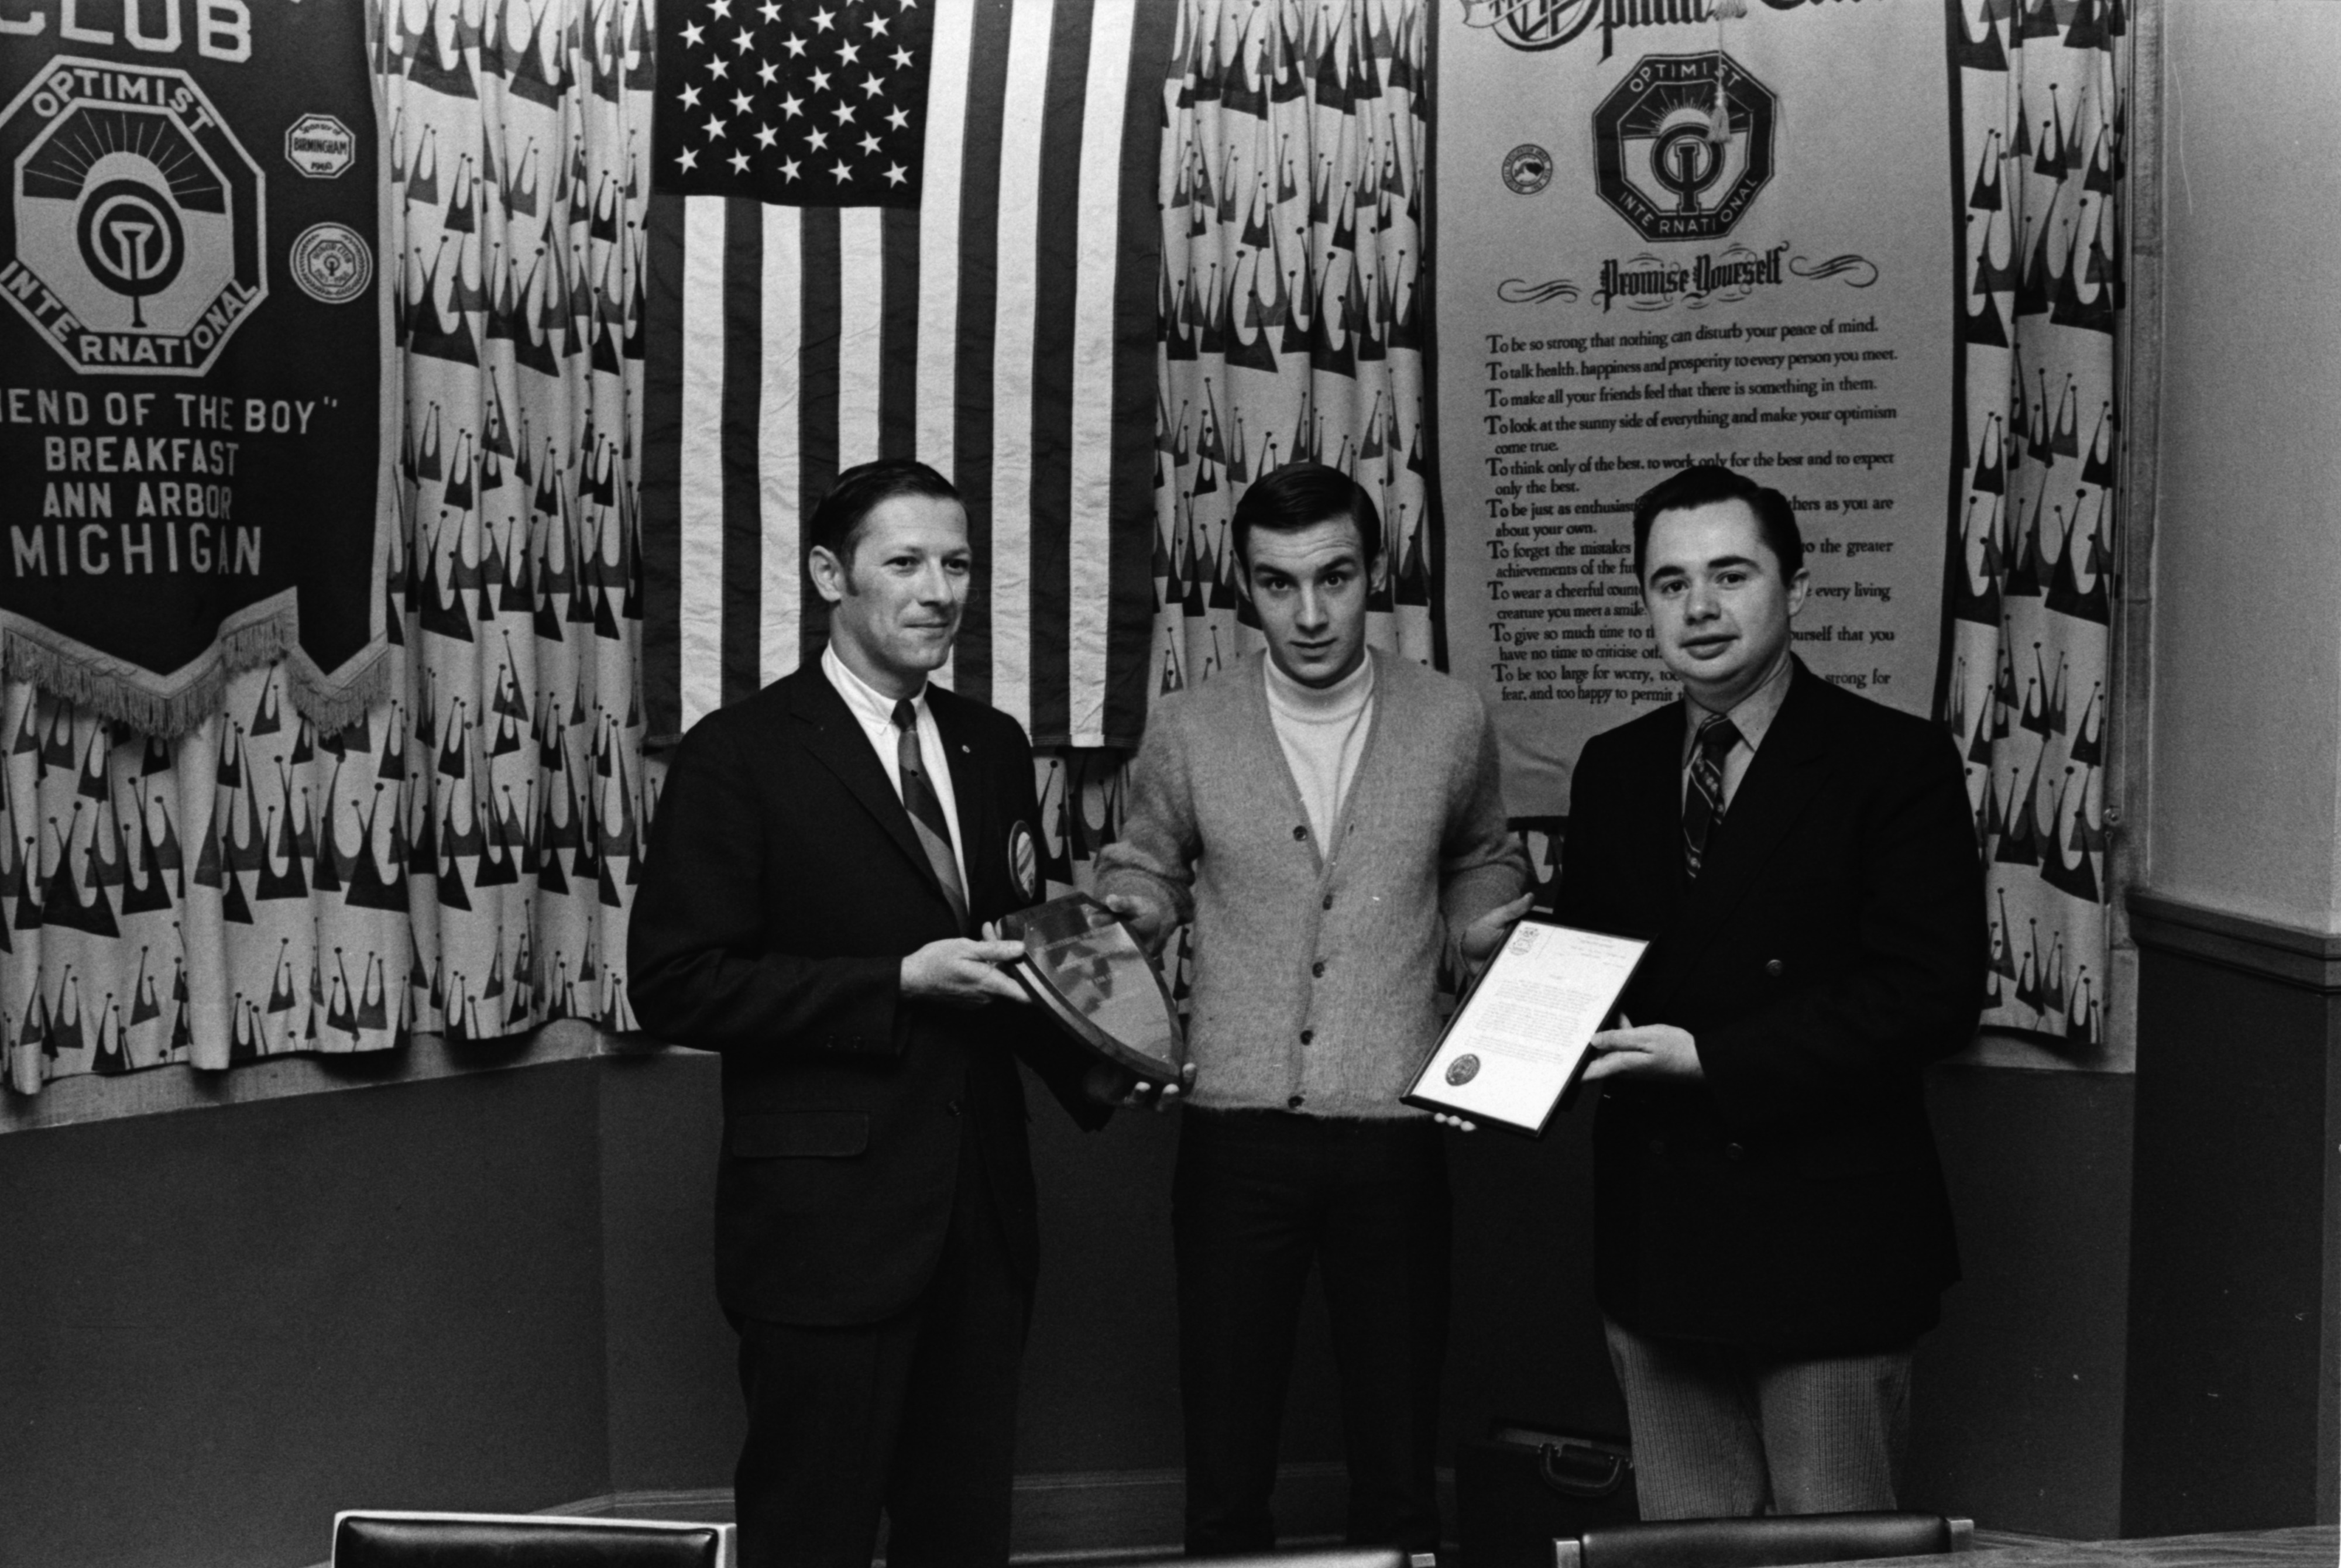 Thomas Brennan Receives Plaque for Capturing Burglar, October 1970 image